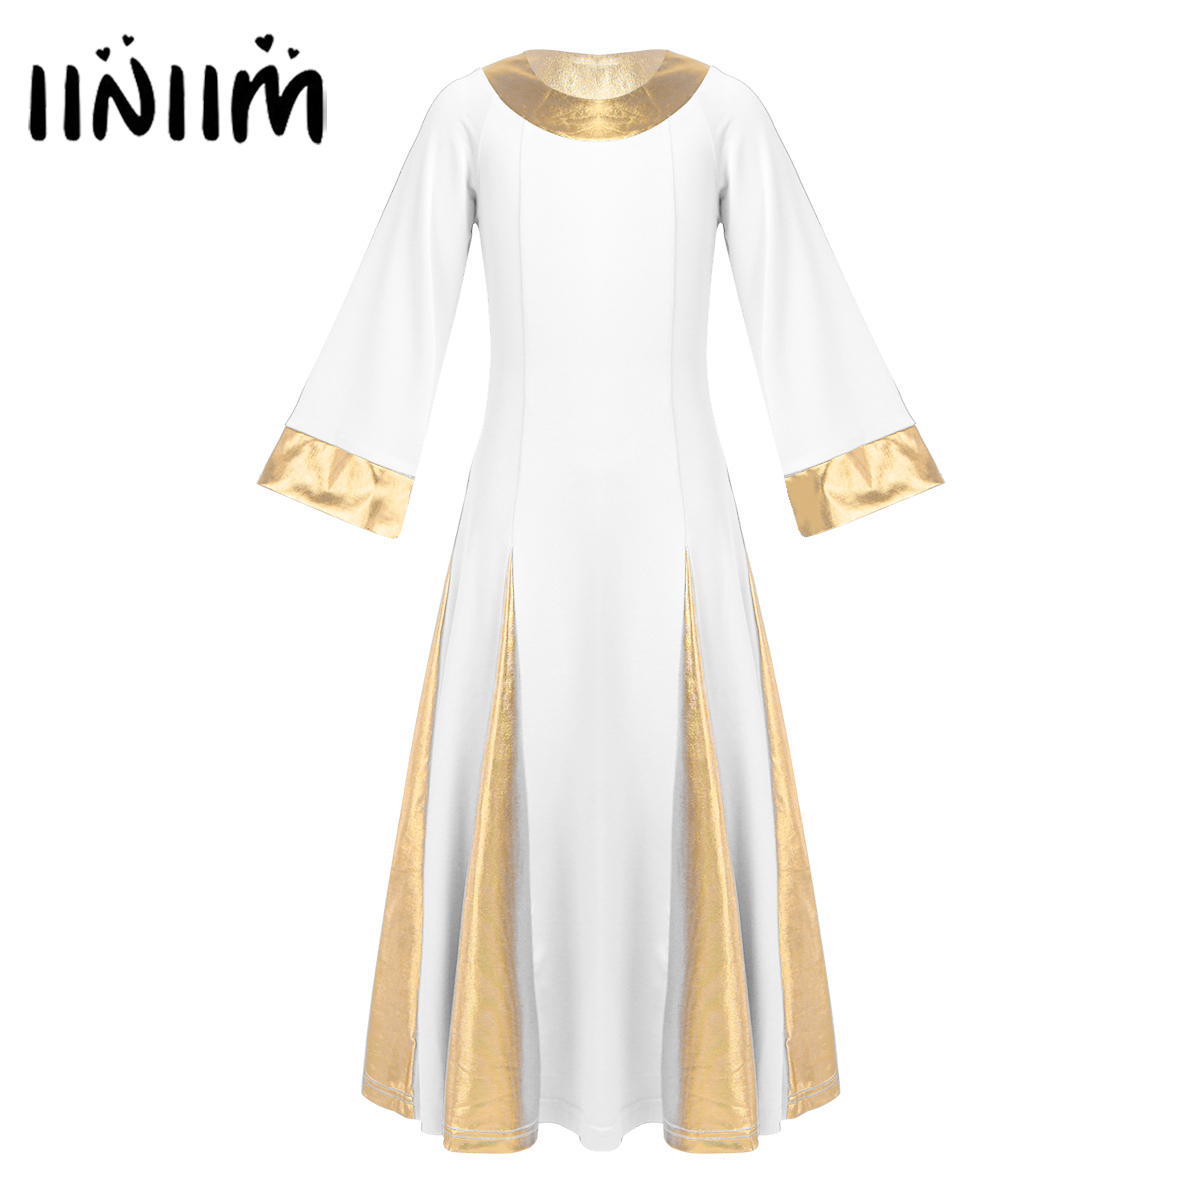 Iiniim Girls Dance Dress Contemporary Dance Costumes Kids Teen Metallic Collar Cuffs Robe Dress Celebration Praise Dance Dress